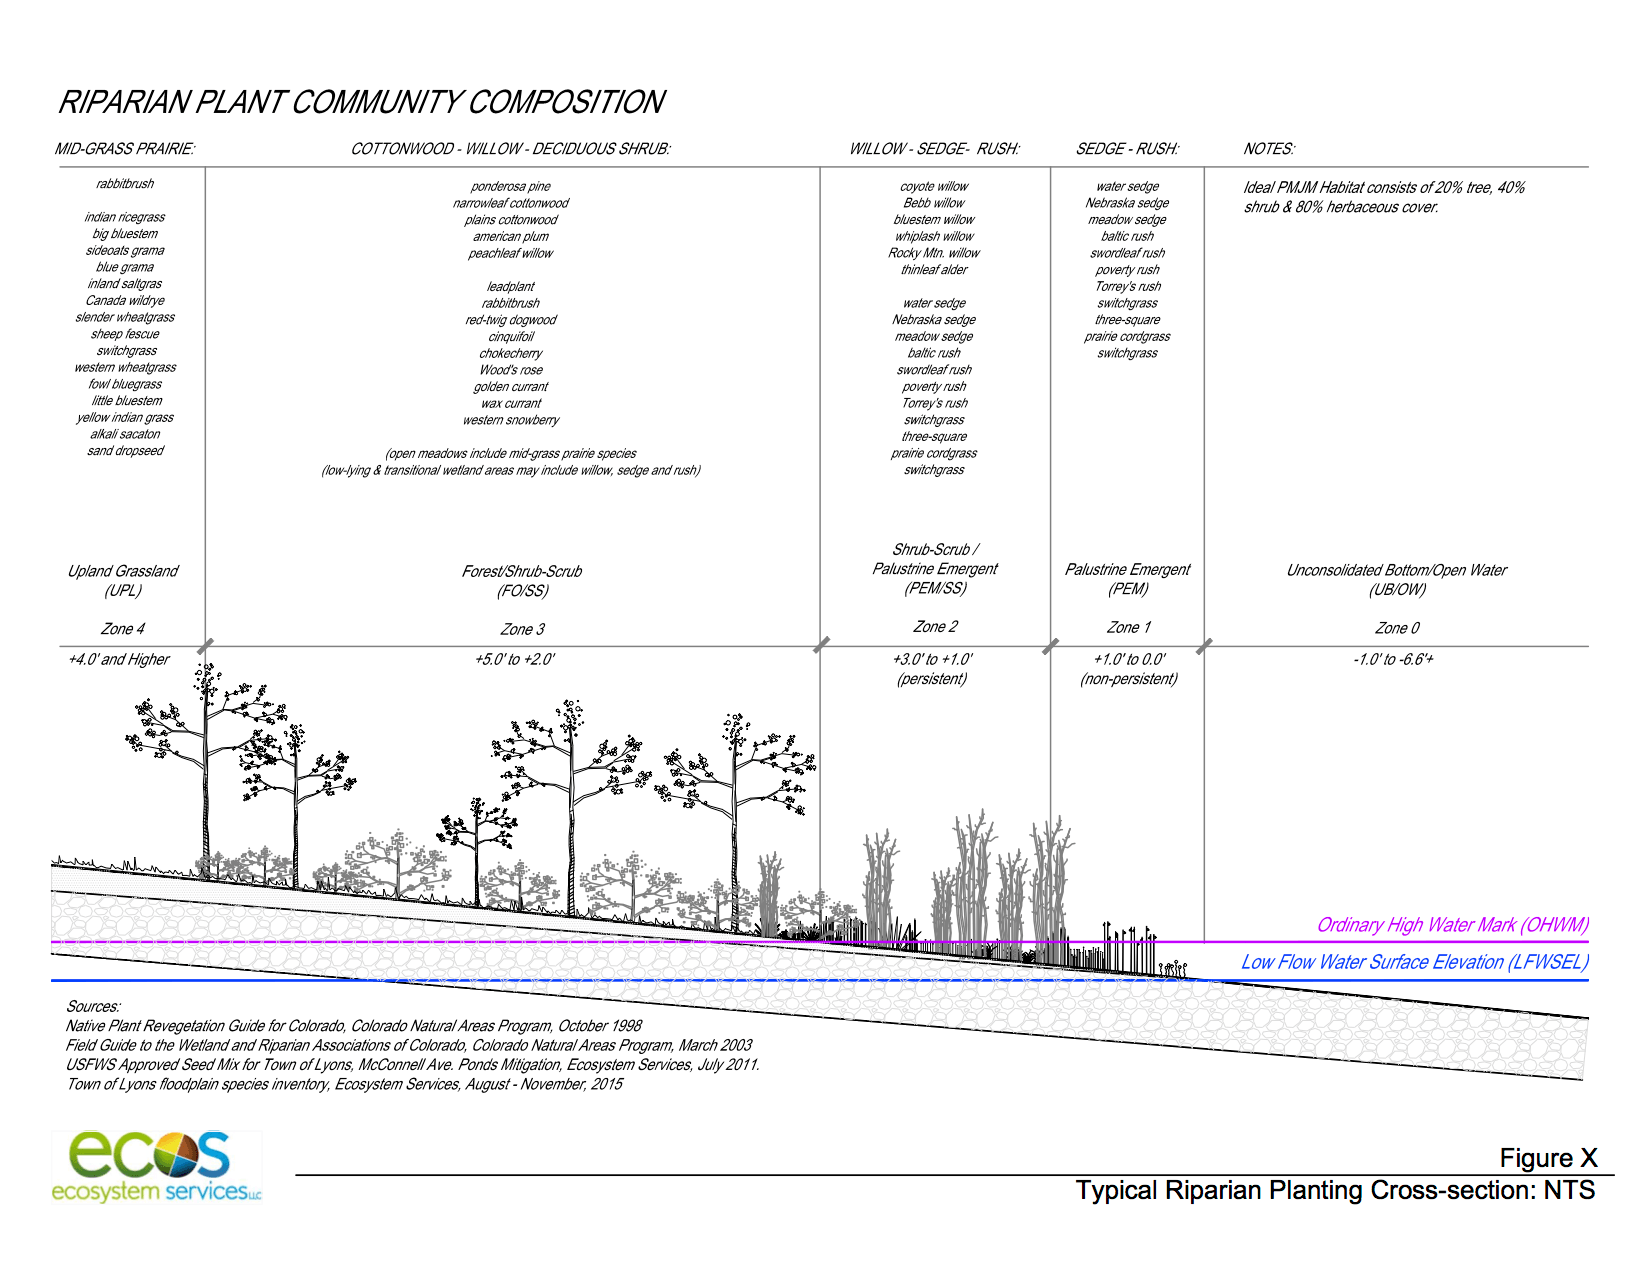 ecos_Typ Riparian Veg Cross-Section 11-18-15